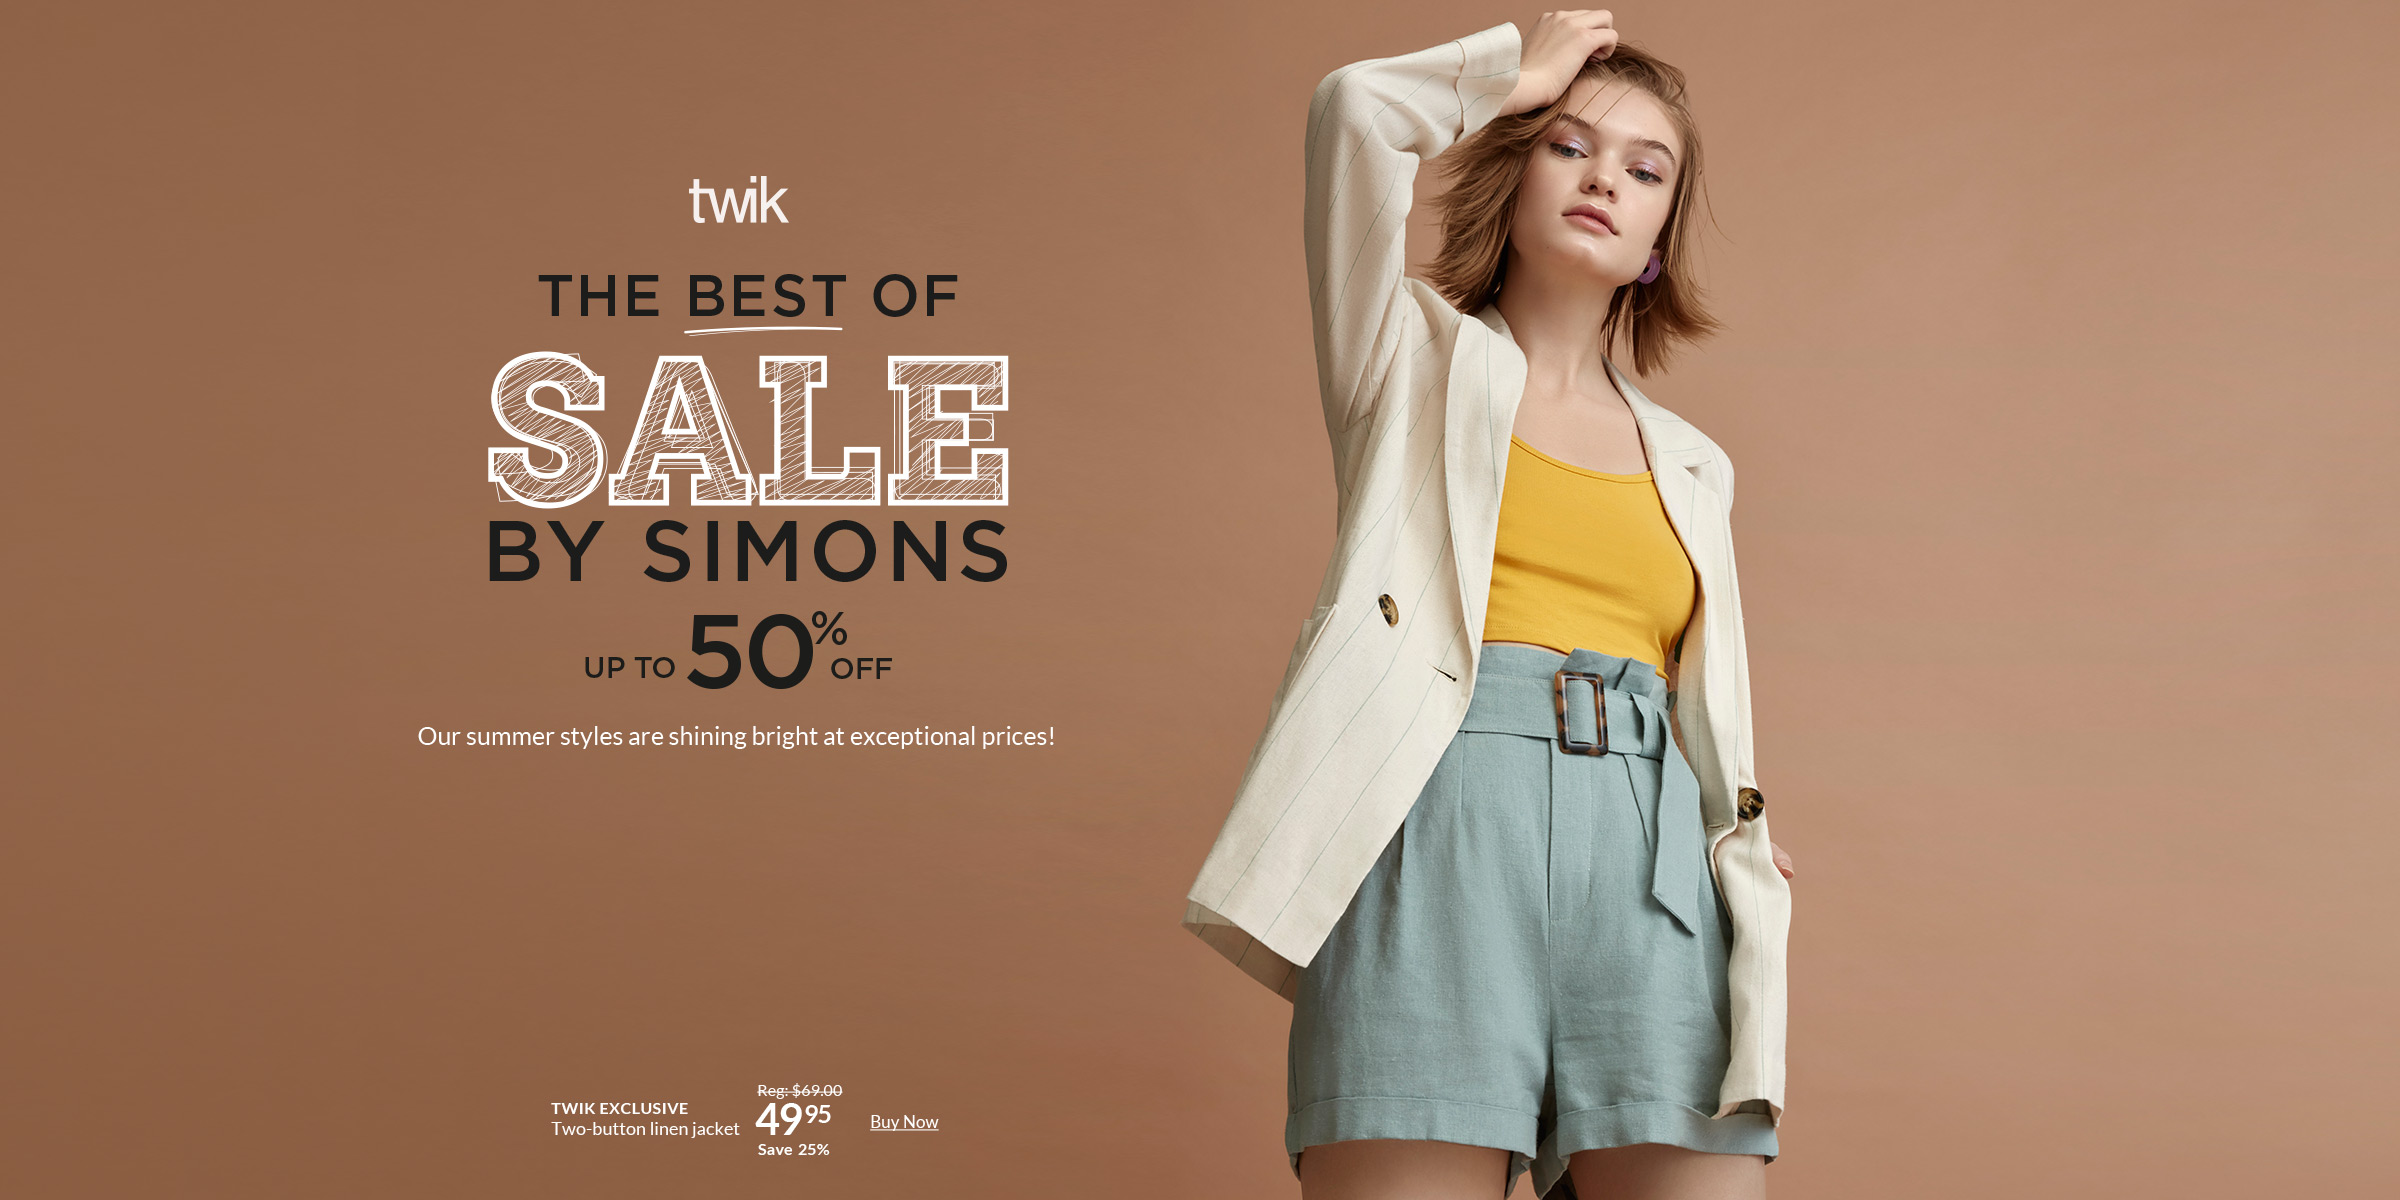 4f92ab168b Women's Clothing & Fashion Accessories for Spring/Summer | Simons